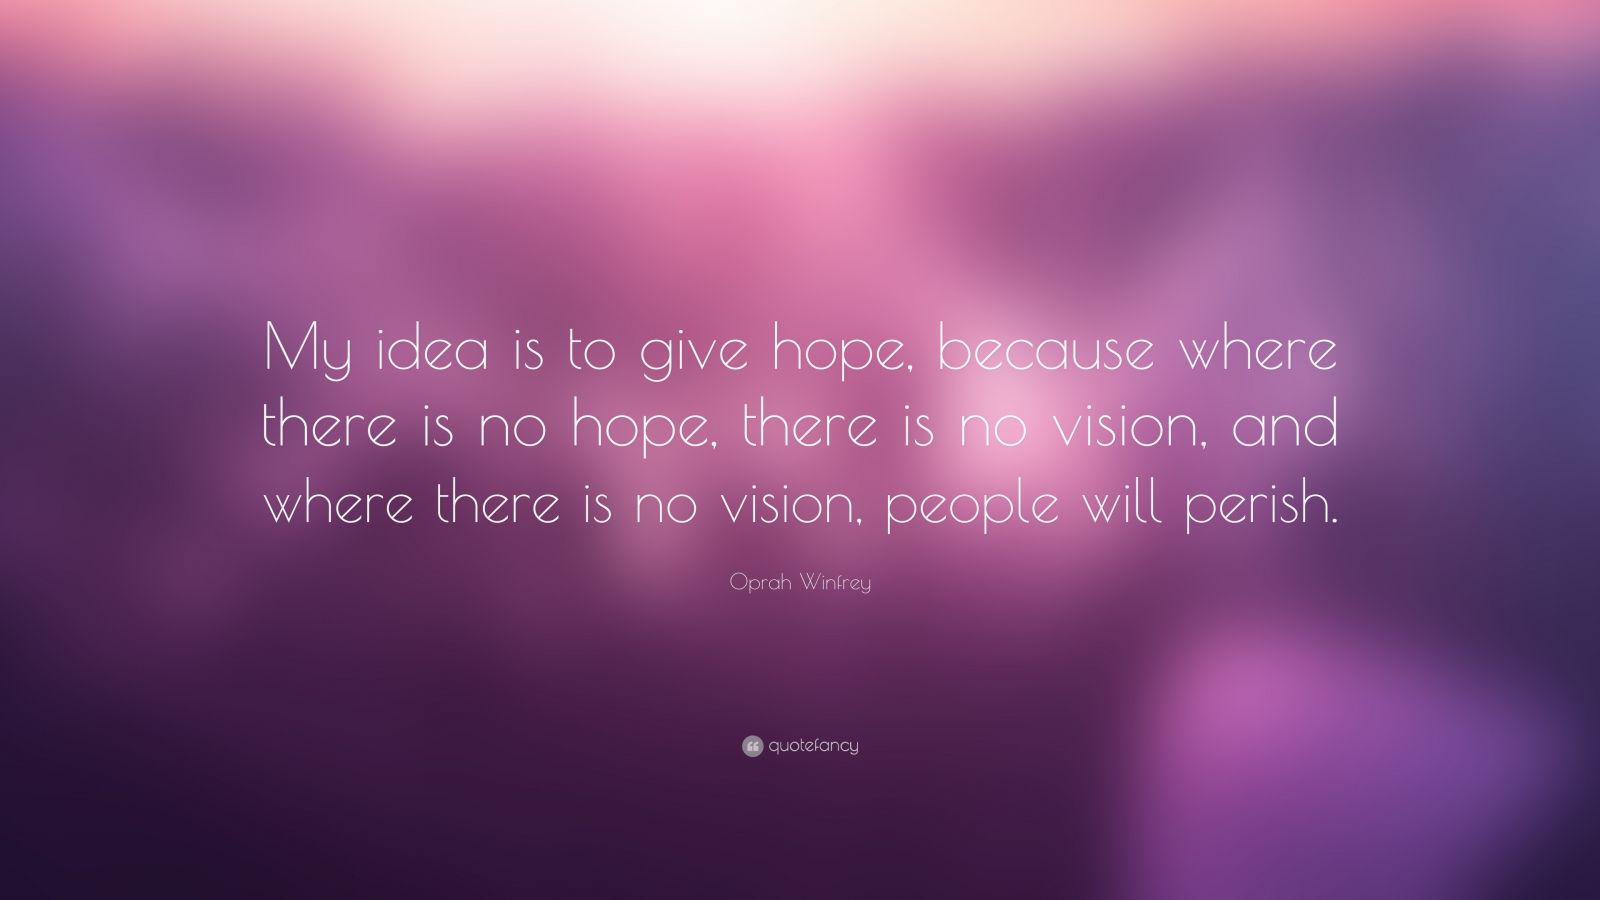 """Oprah Winfrey Quote: """"My idea is to give hope, because where there is no hope, there is no vision, and where there is no vision, people will perish."""""""